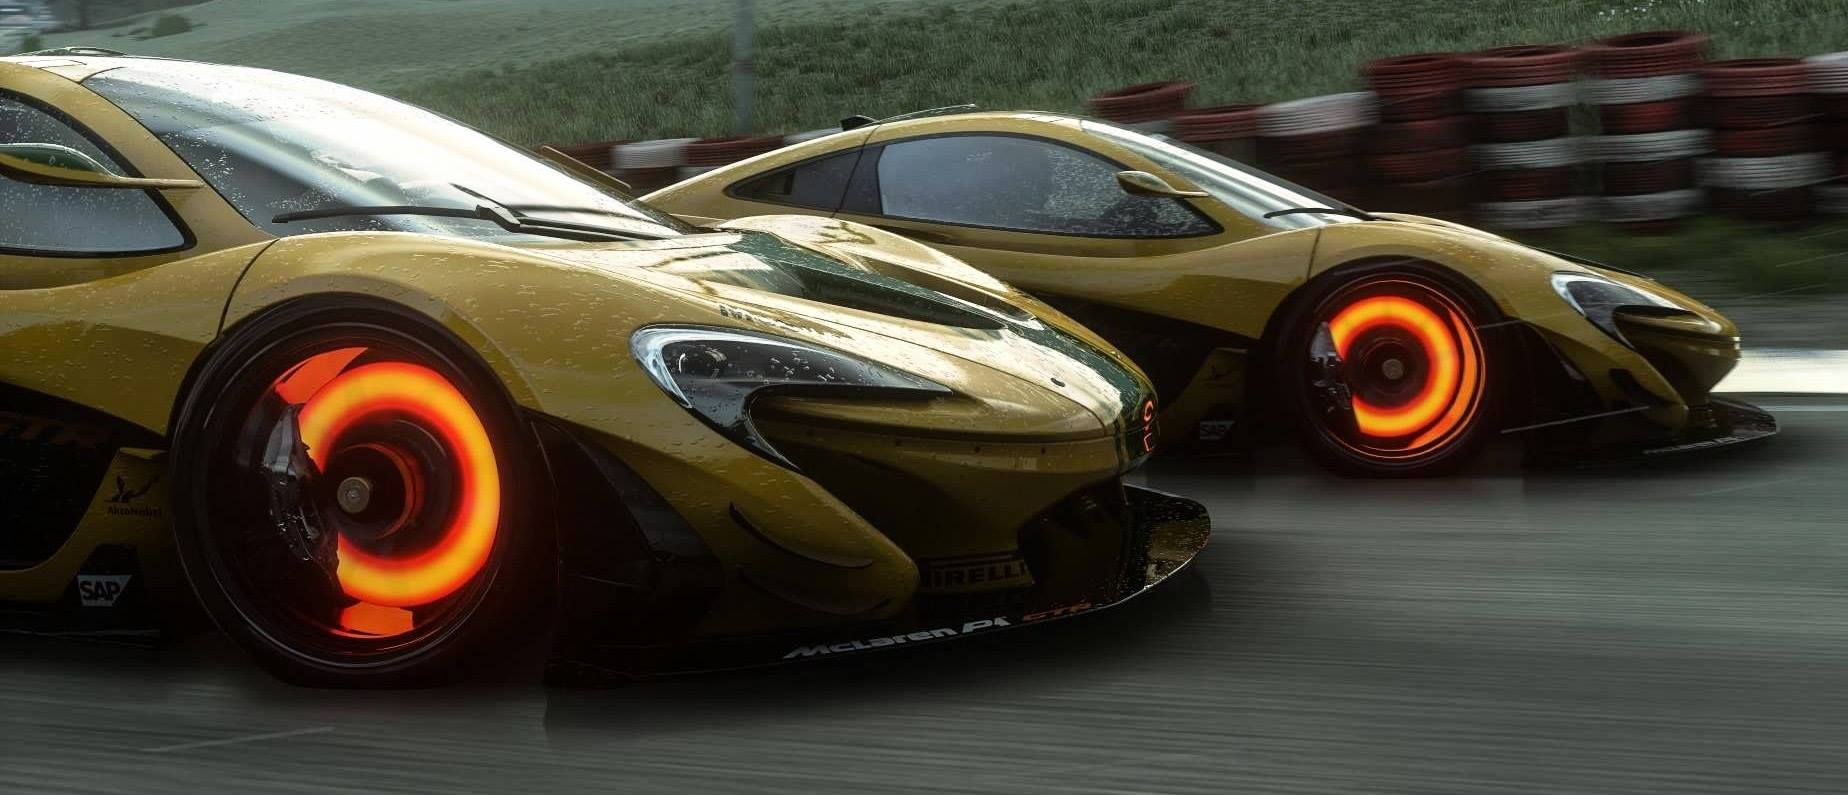 mclaren p1 gtr glowing brake rotors concept and real. Black Bedroom Furniture Sets. Home Design Ideas